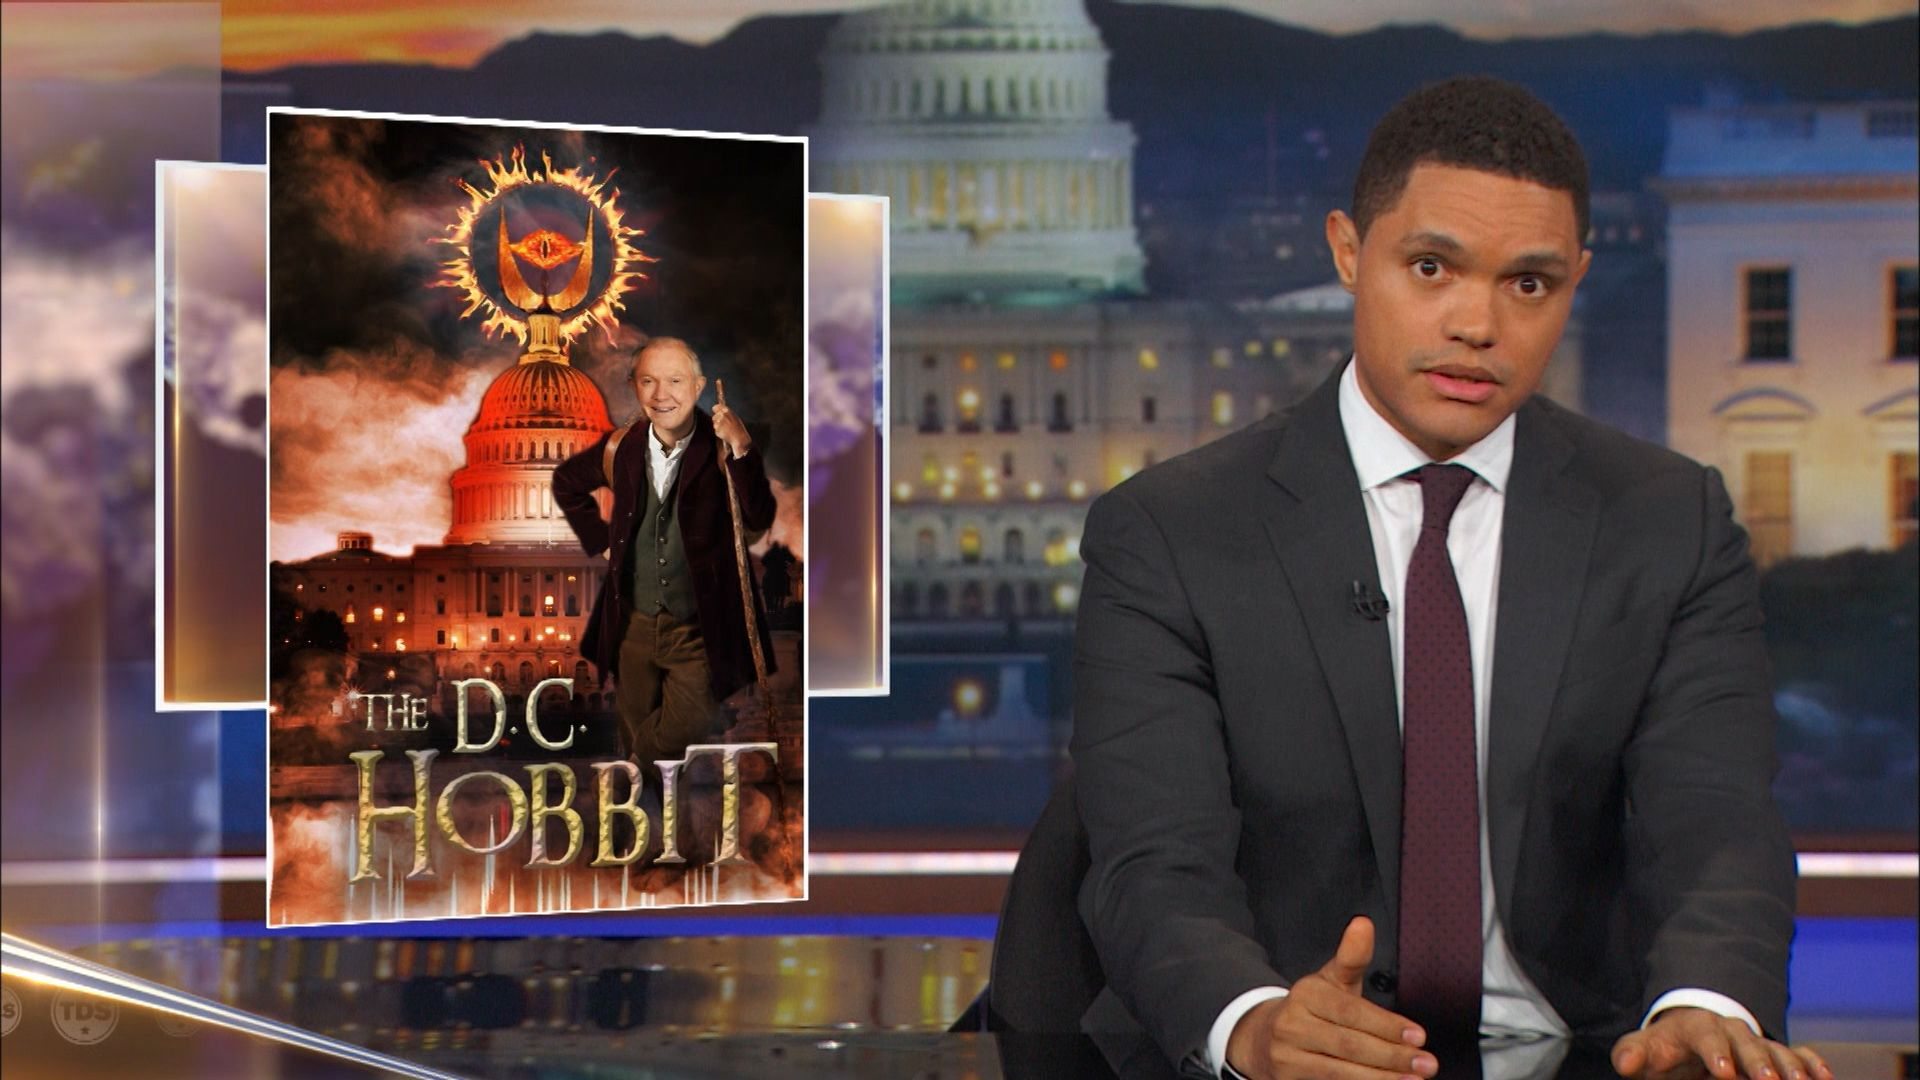 """Makeover Shows julius caesar"""" gets a trumpian makeover - the daily show with"""